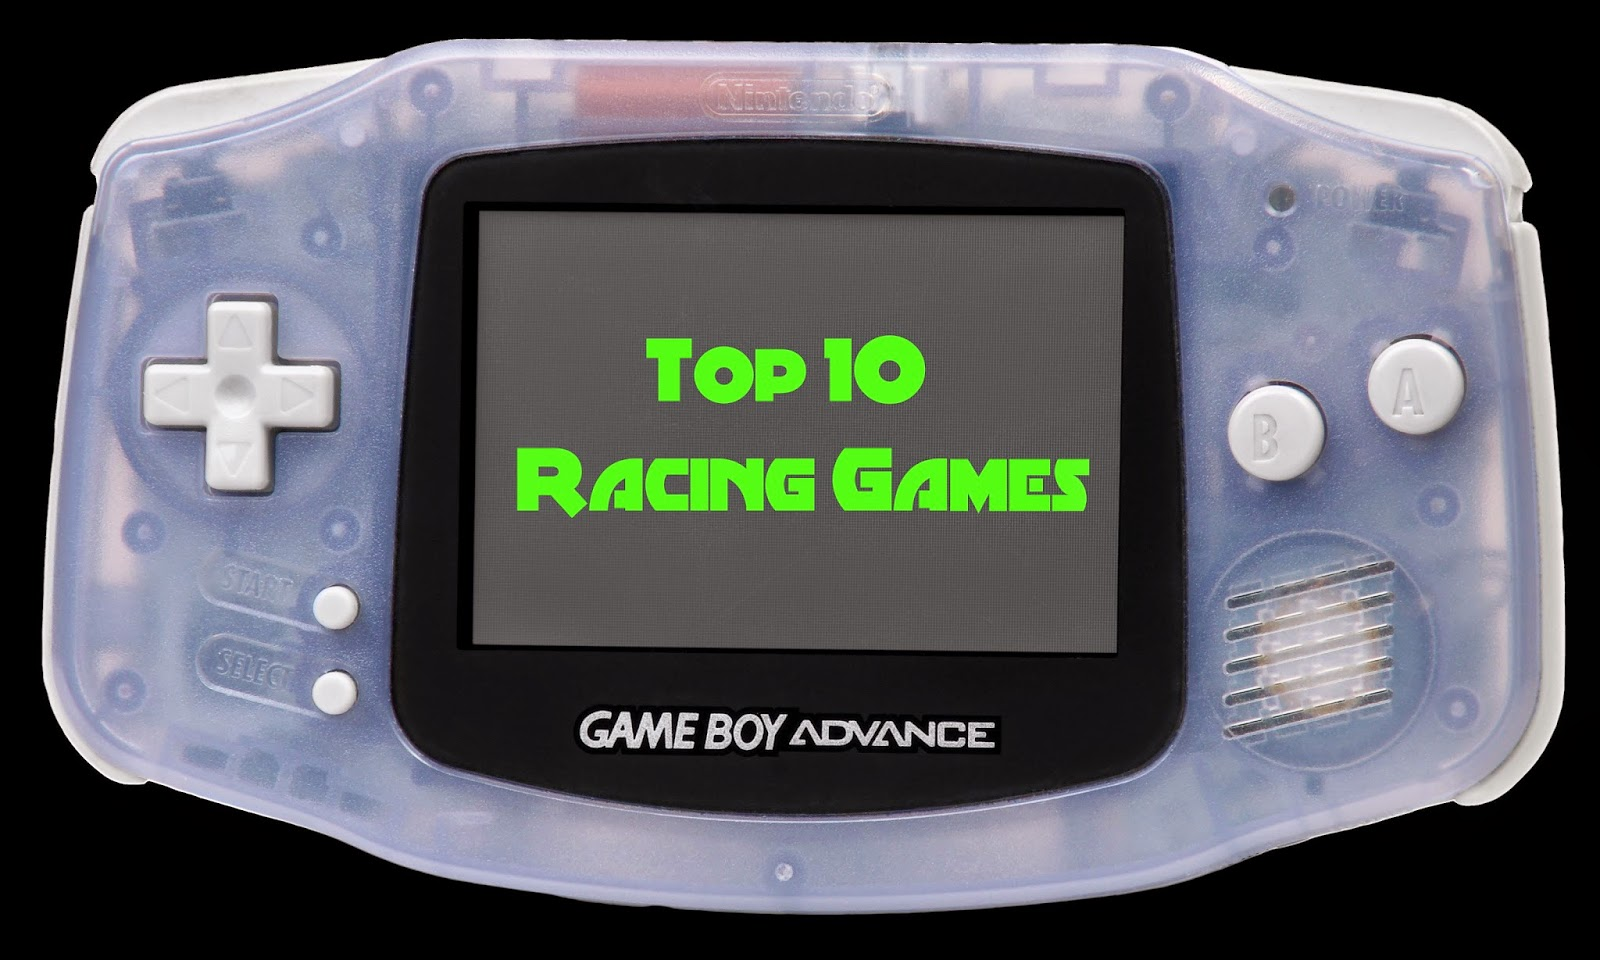 Superretrobros top 10 game boy advance racing games sciox Image collections